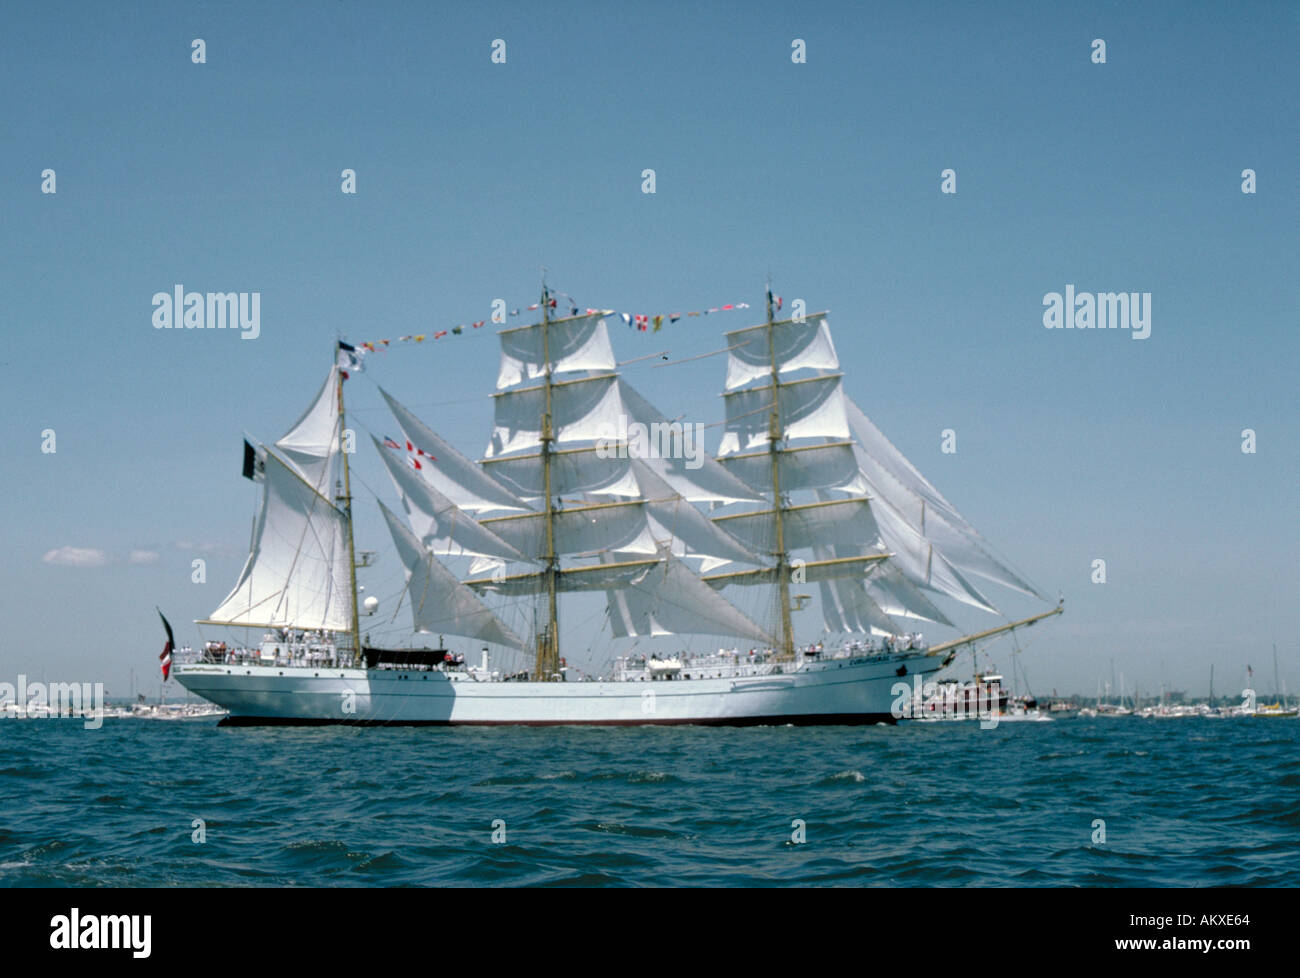 A white three masted full rigged ship with colorful flags waving in the breeze at the Tall Ships exhibition. - Stock Image